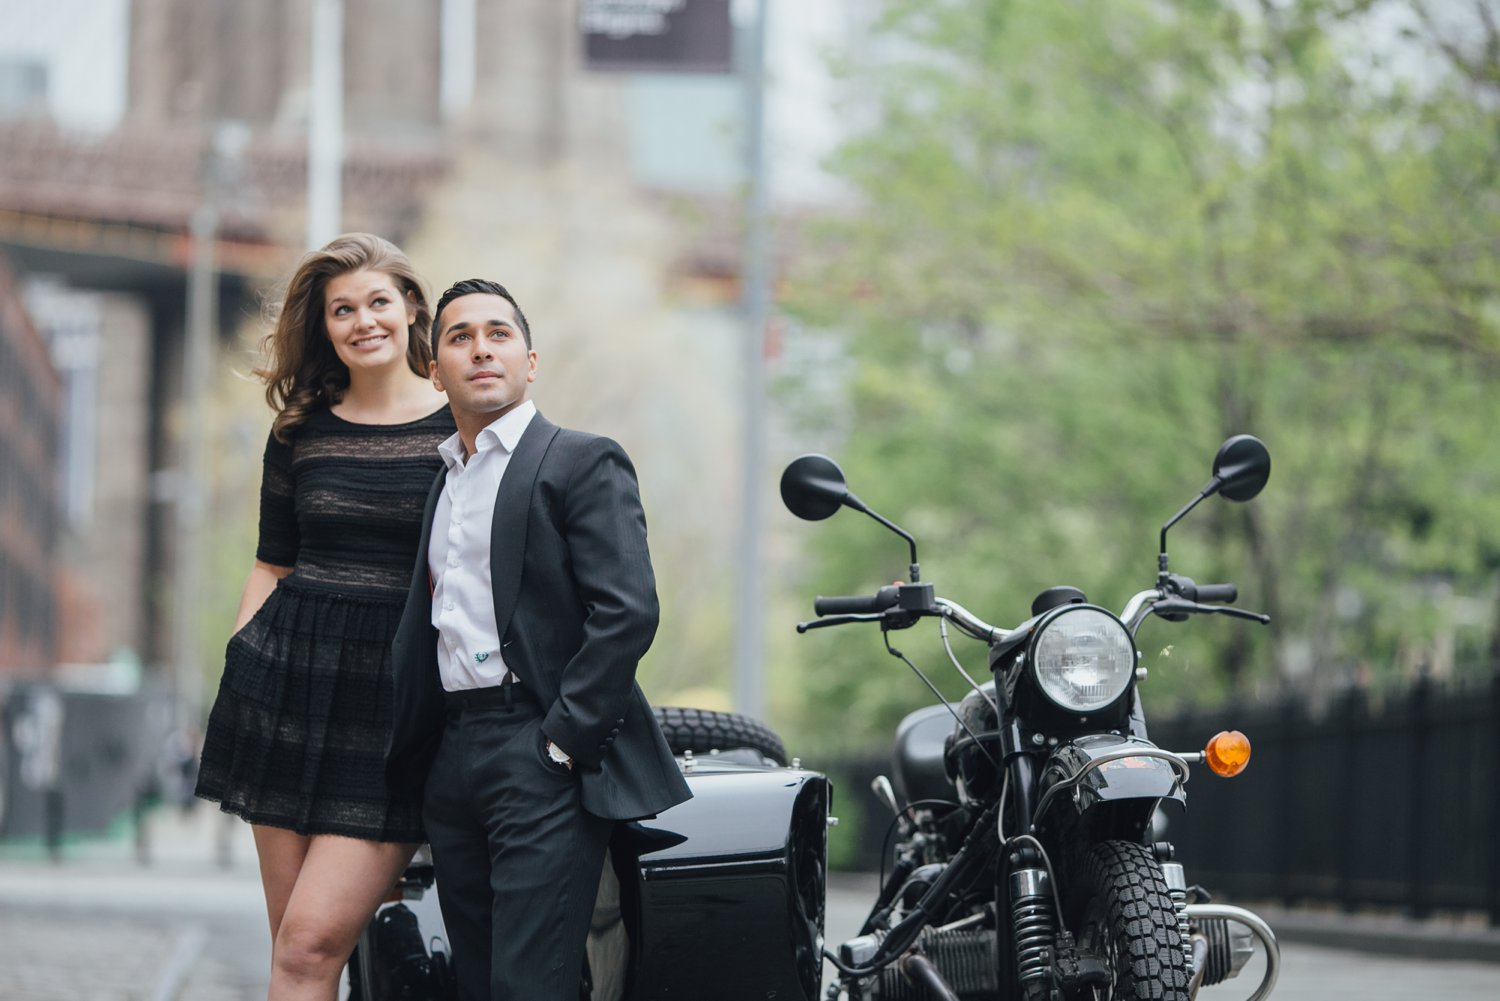 33NYC-NJ-ENGAGEMENT-PHOTOGRAPHY-BY-INTOTHESTORY-MOO-JAE.JPG